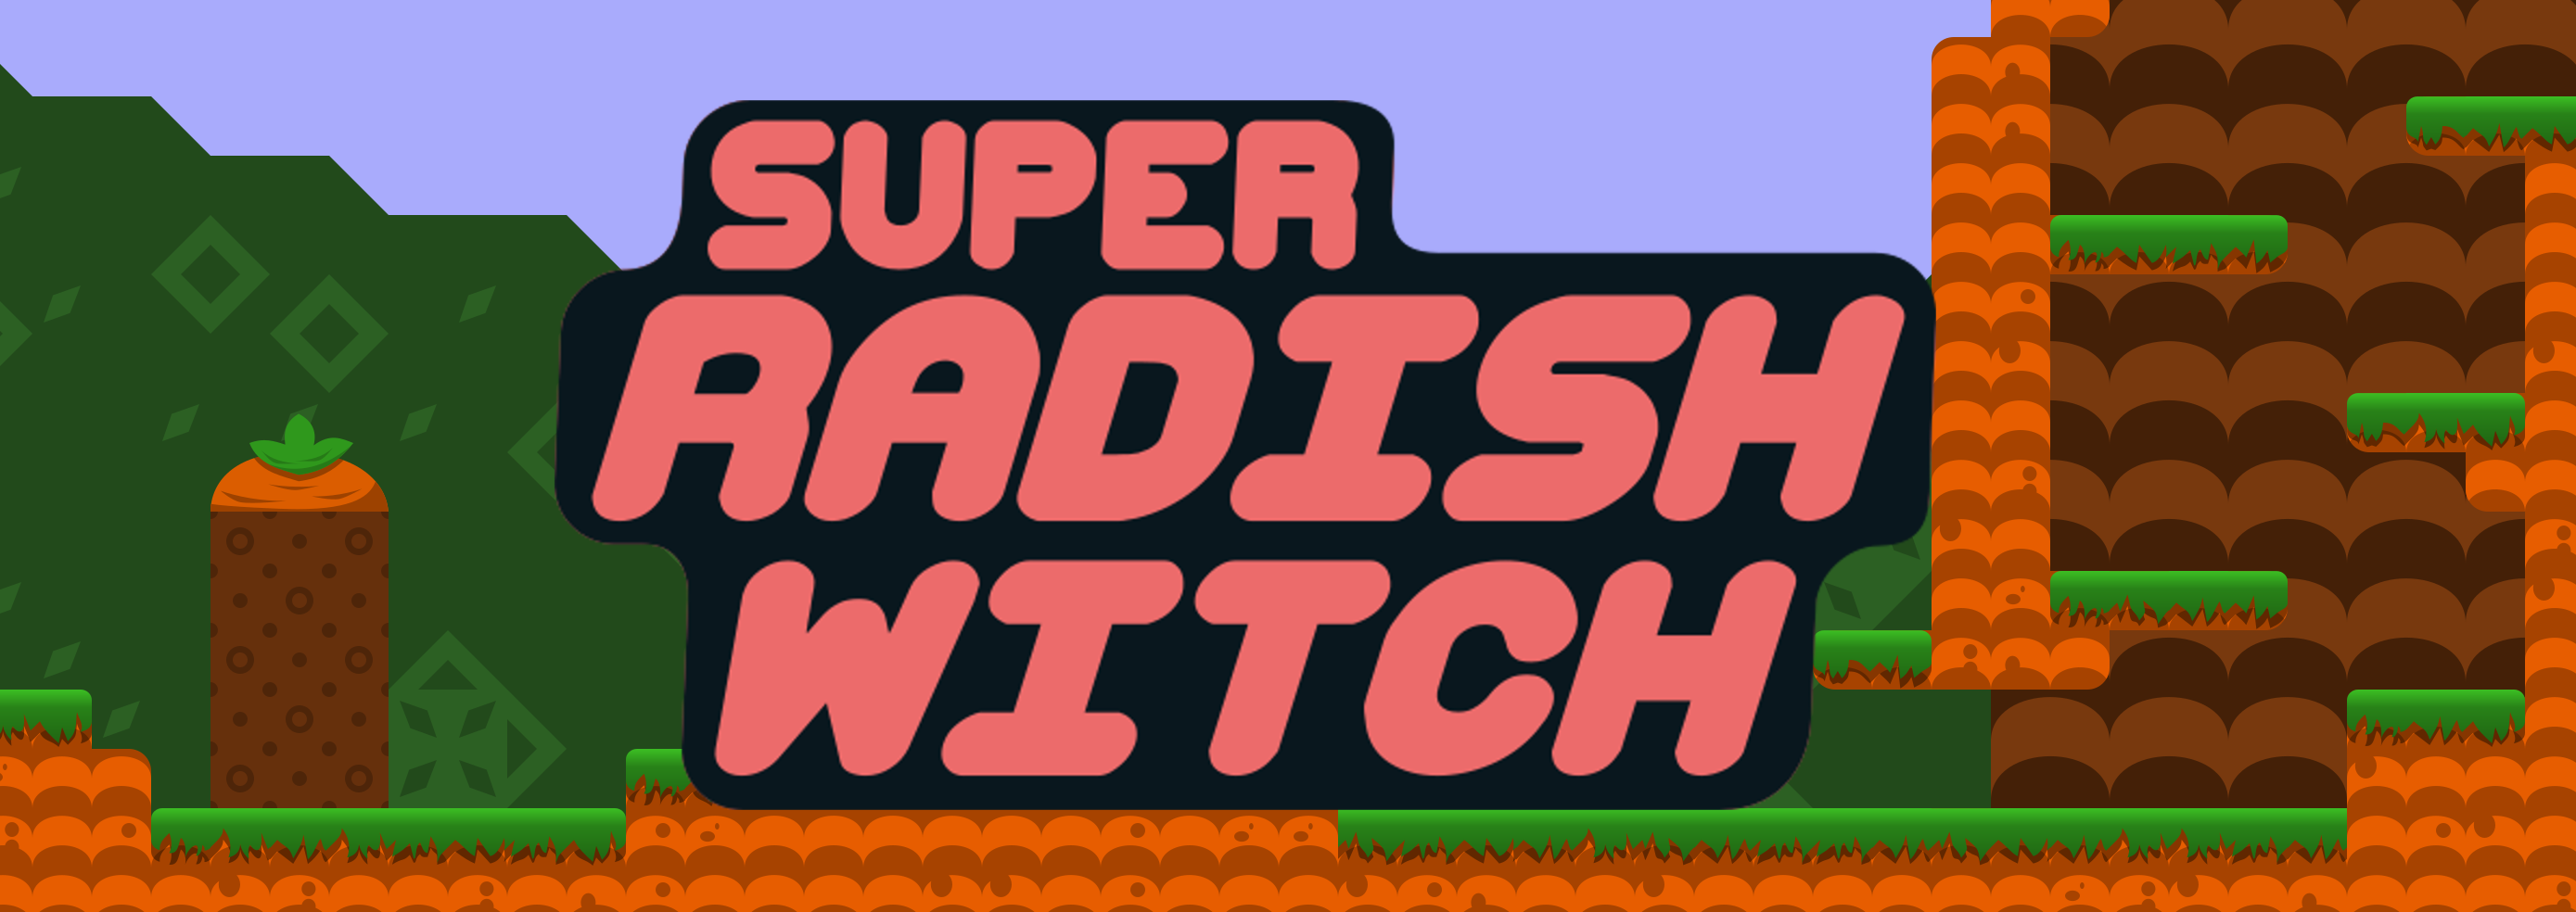 Super Radish Witch